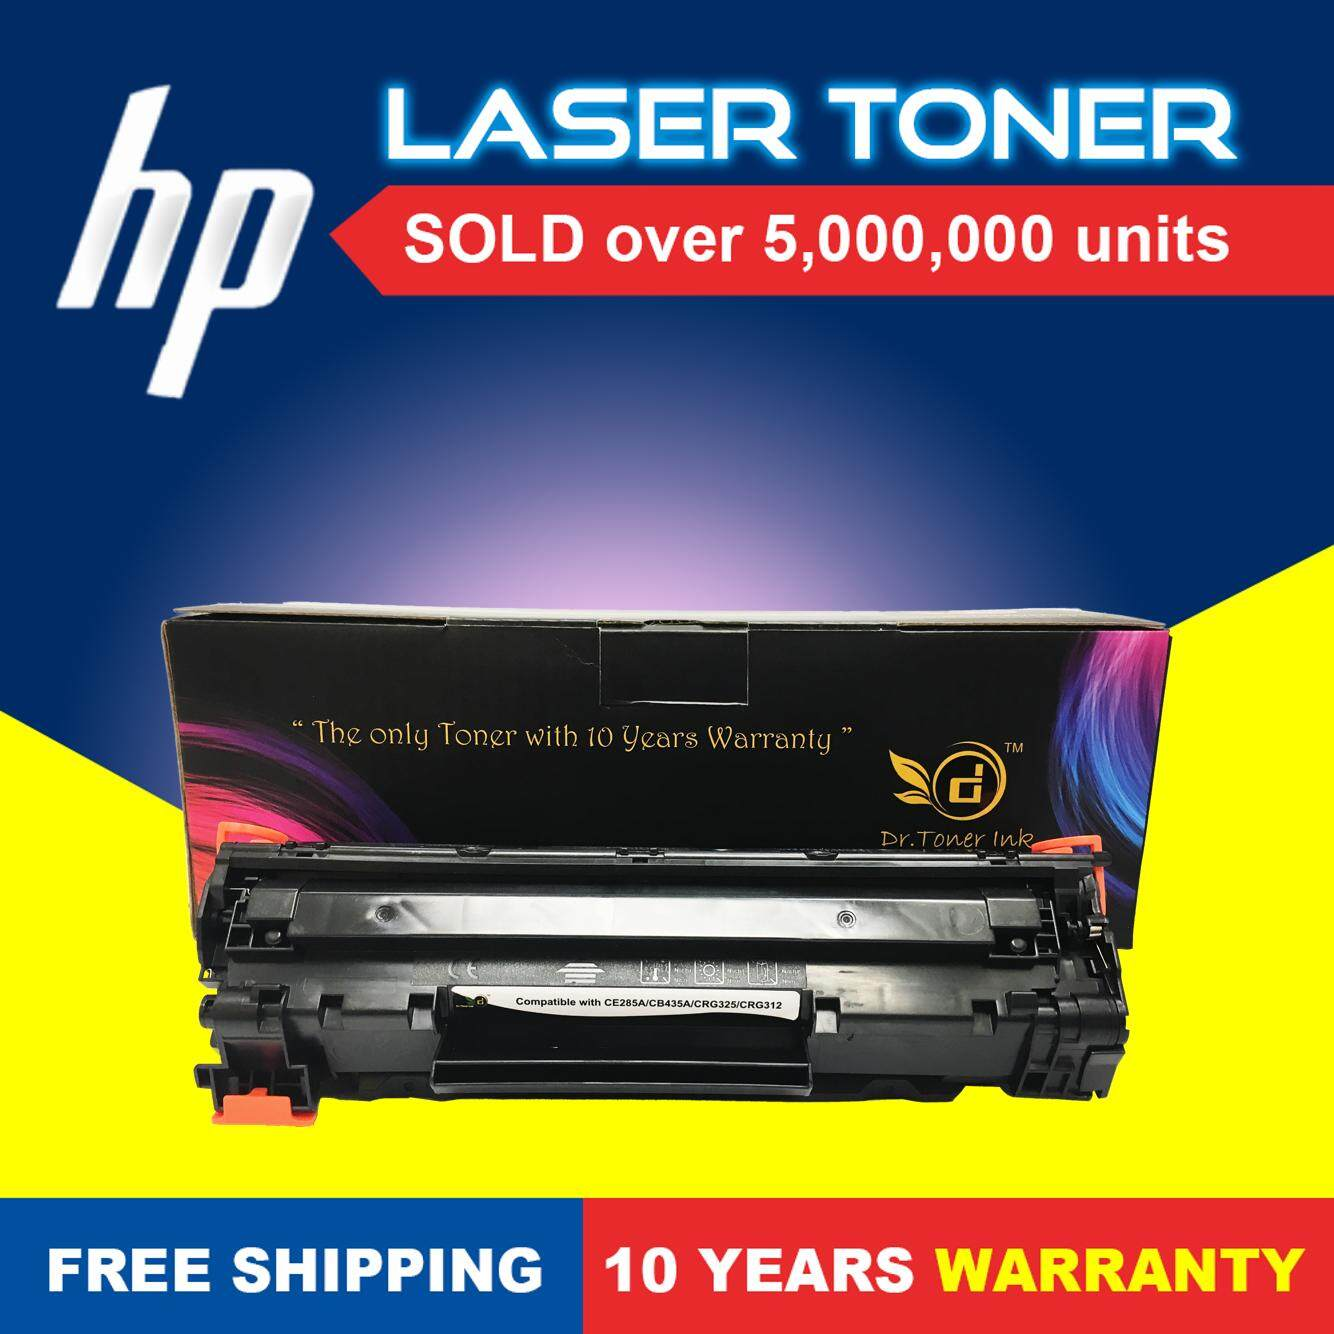 Laserjet Ce285a Cartridge Toner Hp 85a Hitam Lihat Daftar Harga Wiper Blade Wb For Use In P1102 P1102w M1132 M1212 M1214 M1217 Compatible Drtoner Black Mono Pro